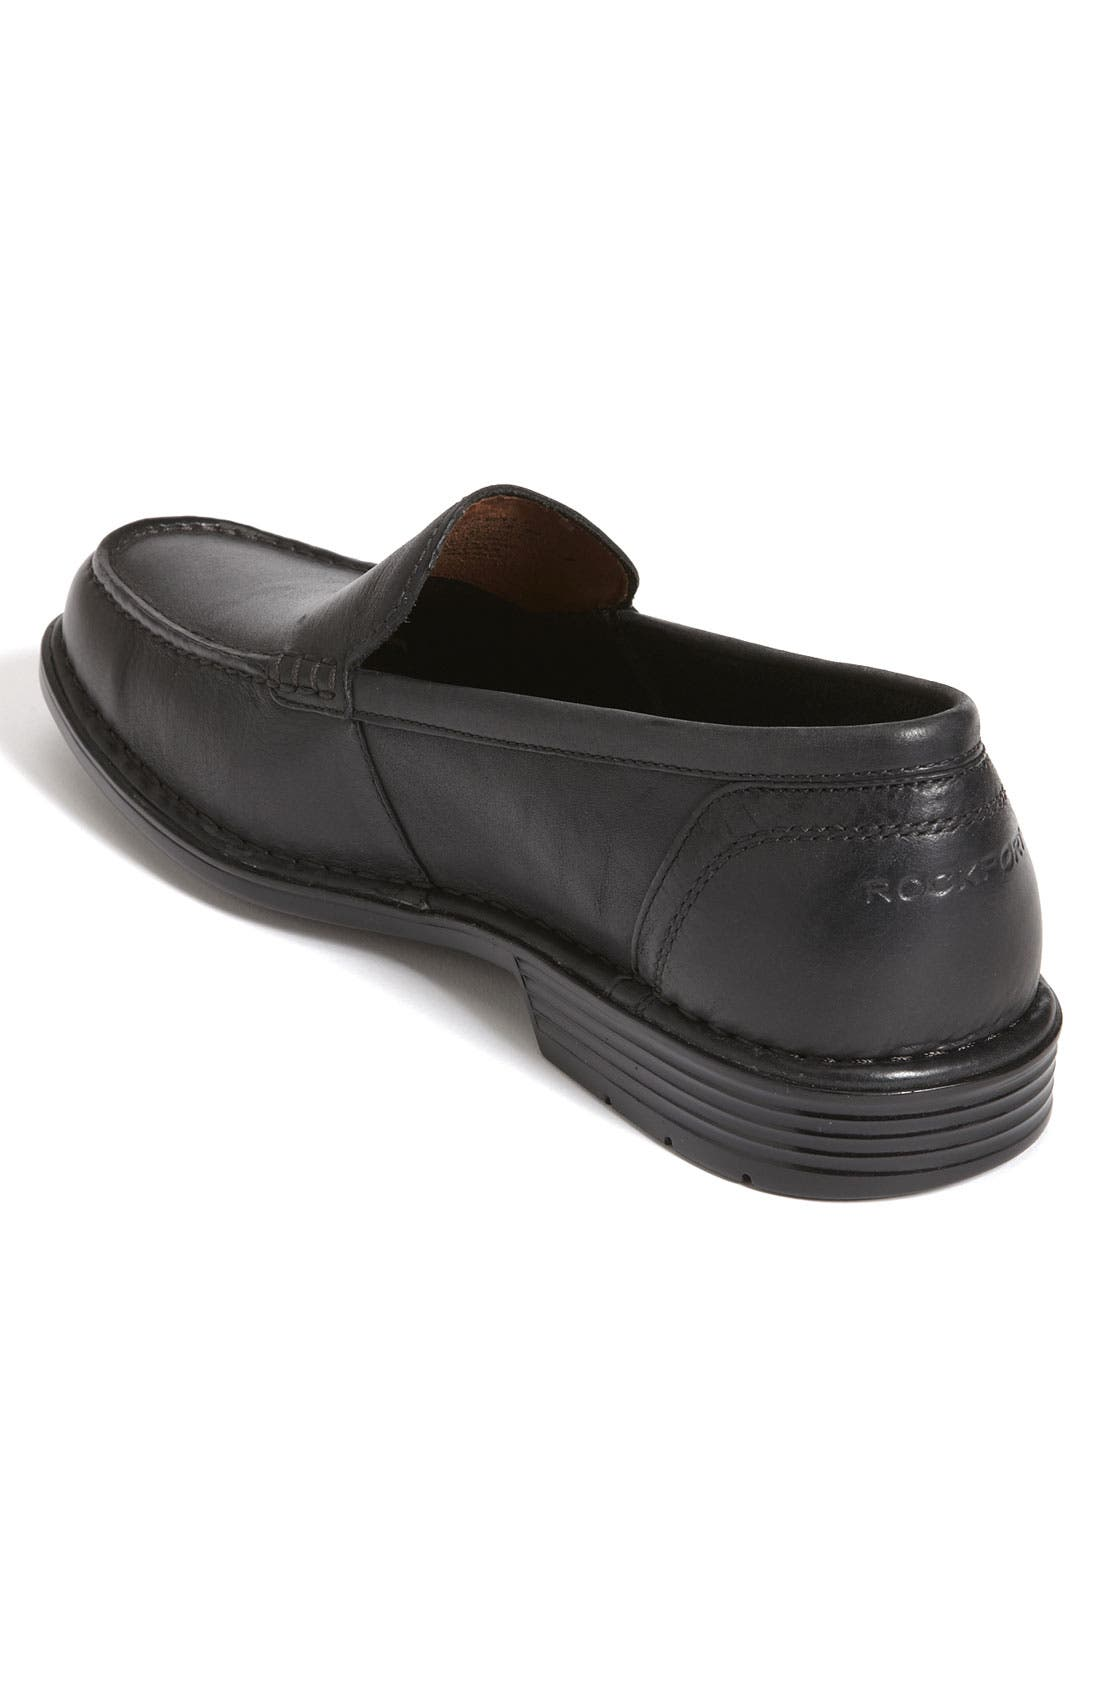 Alternate Image 2  - Rockport 'Washington Square' Venetian Loafer (Online Only)